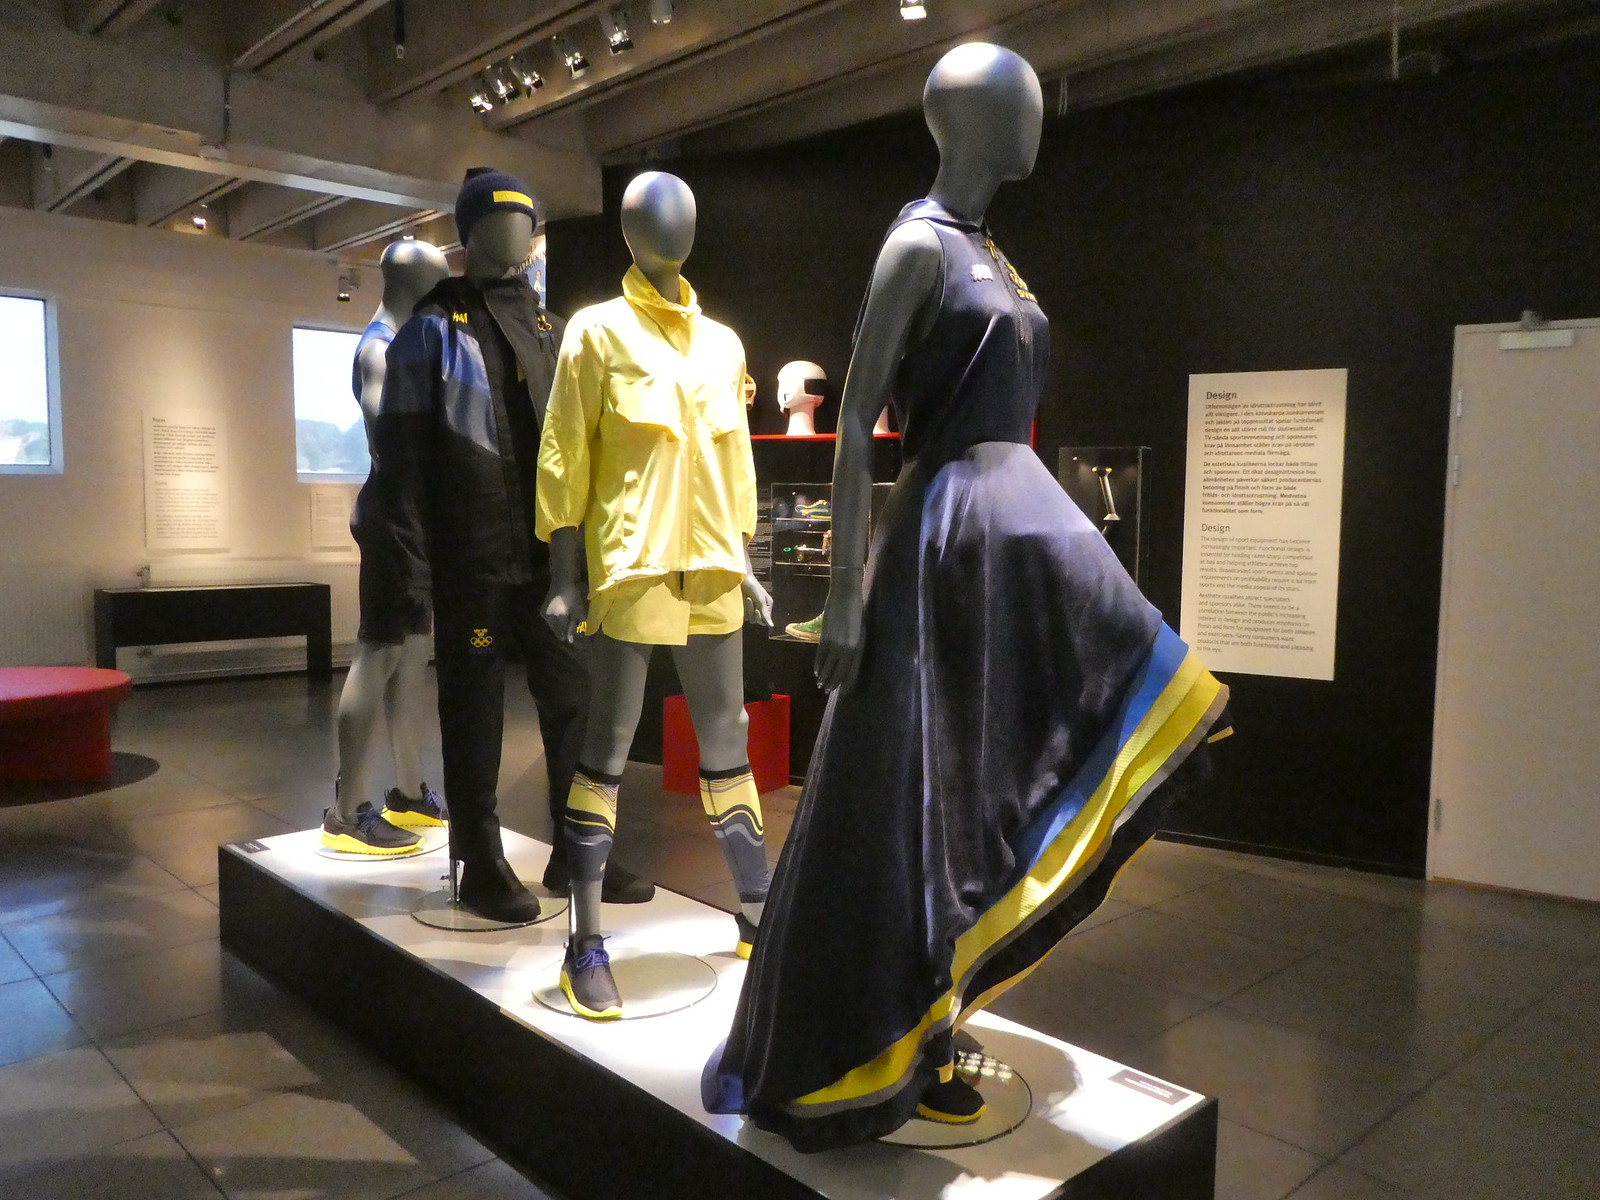 National Sports Museum of Sweden